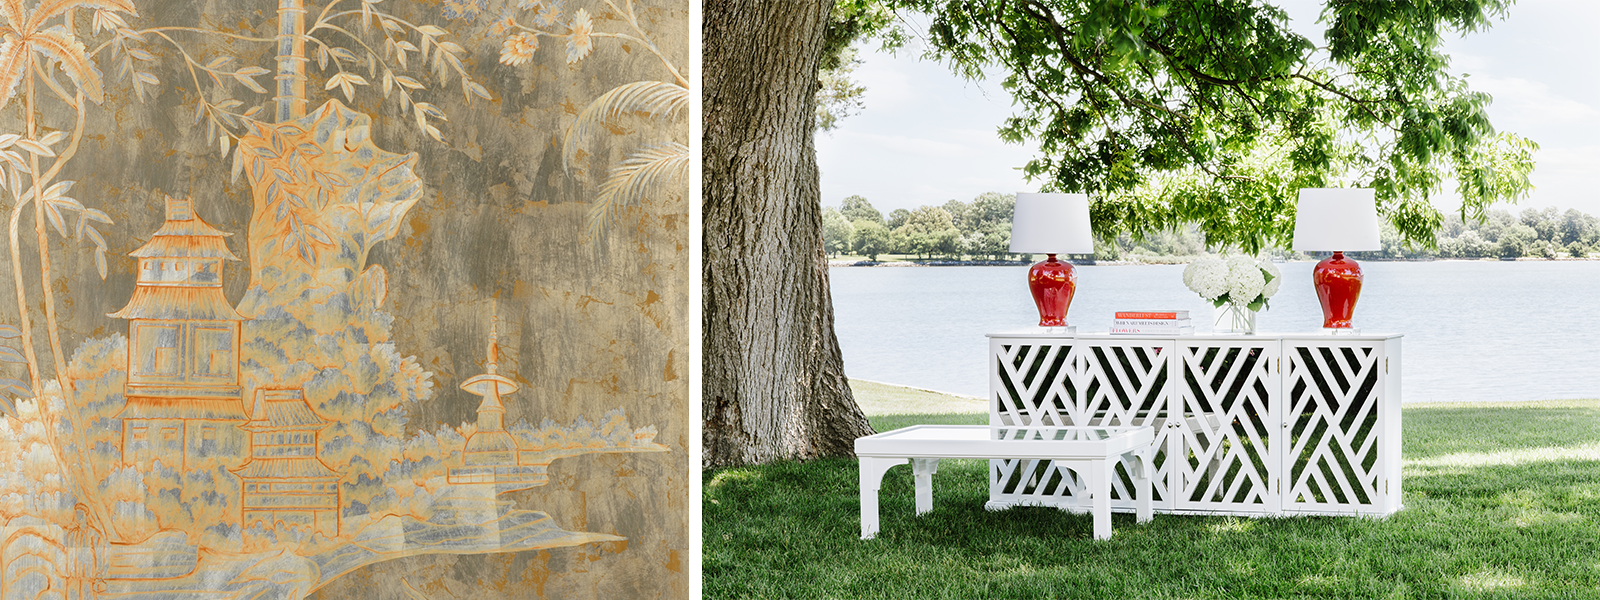 Jamie Merida Collection for Chelsea House - left side shows chinoiserie gold and silver-tone wood panel; right side shows white console cabinet and coffee table in an outdoor setting